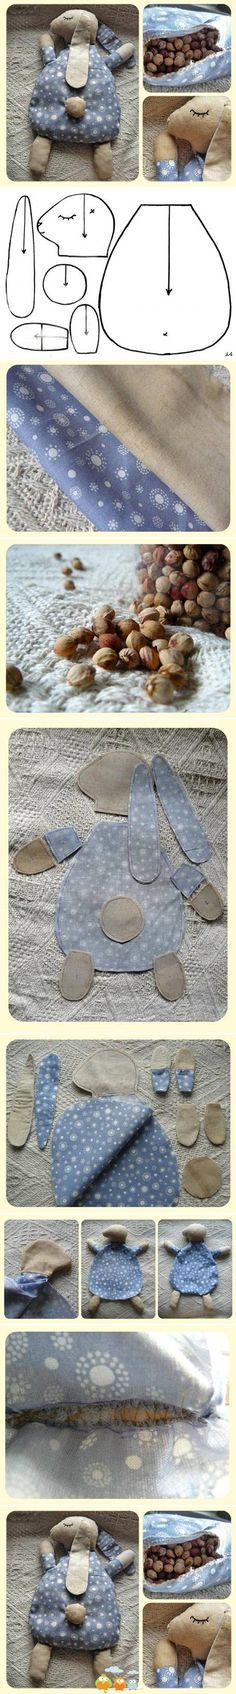 18 ideas for baby diy sewing toy Sewing Toys, Baby Sewing, Sewing Crafts, Sewing Projects, Diy Crafts, Diy Projects, Fabric Toys, Fabric Crafts, Creation Couture